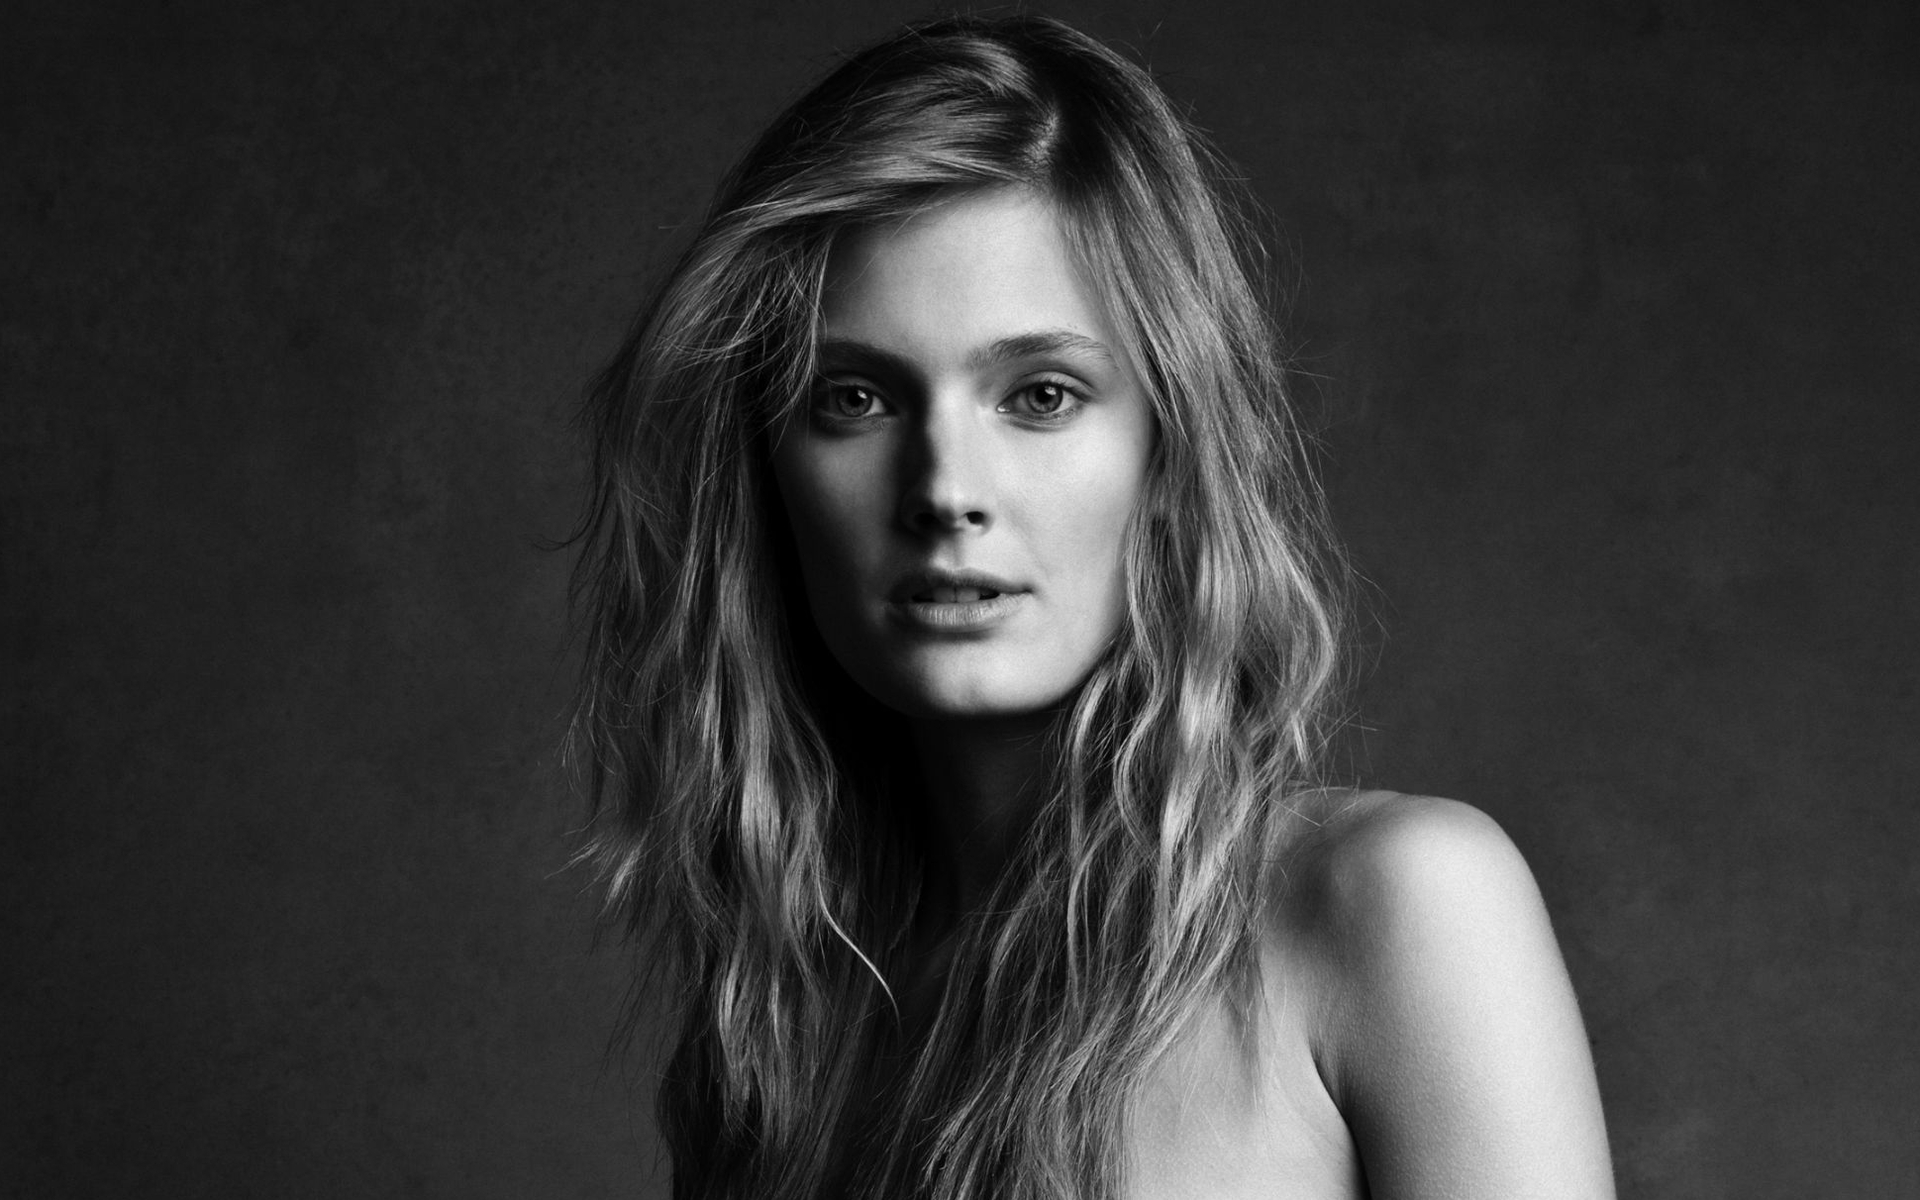 Burberry Wallpaper Iphone X Constance Jablonski Full Hd Wallpaper And Background Image